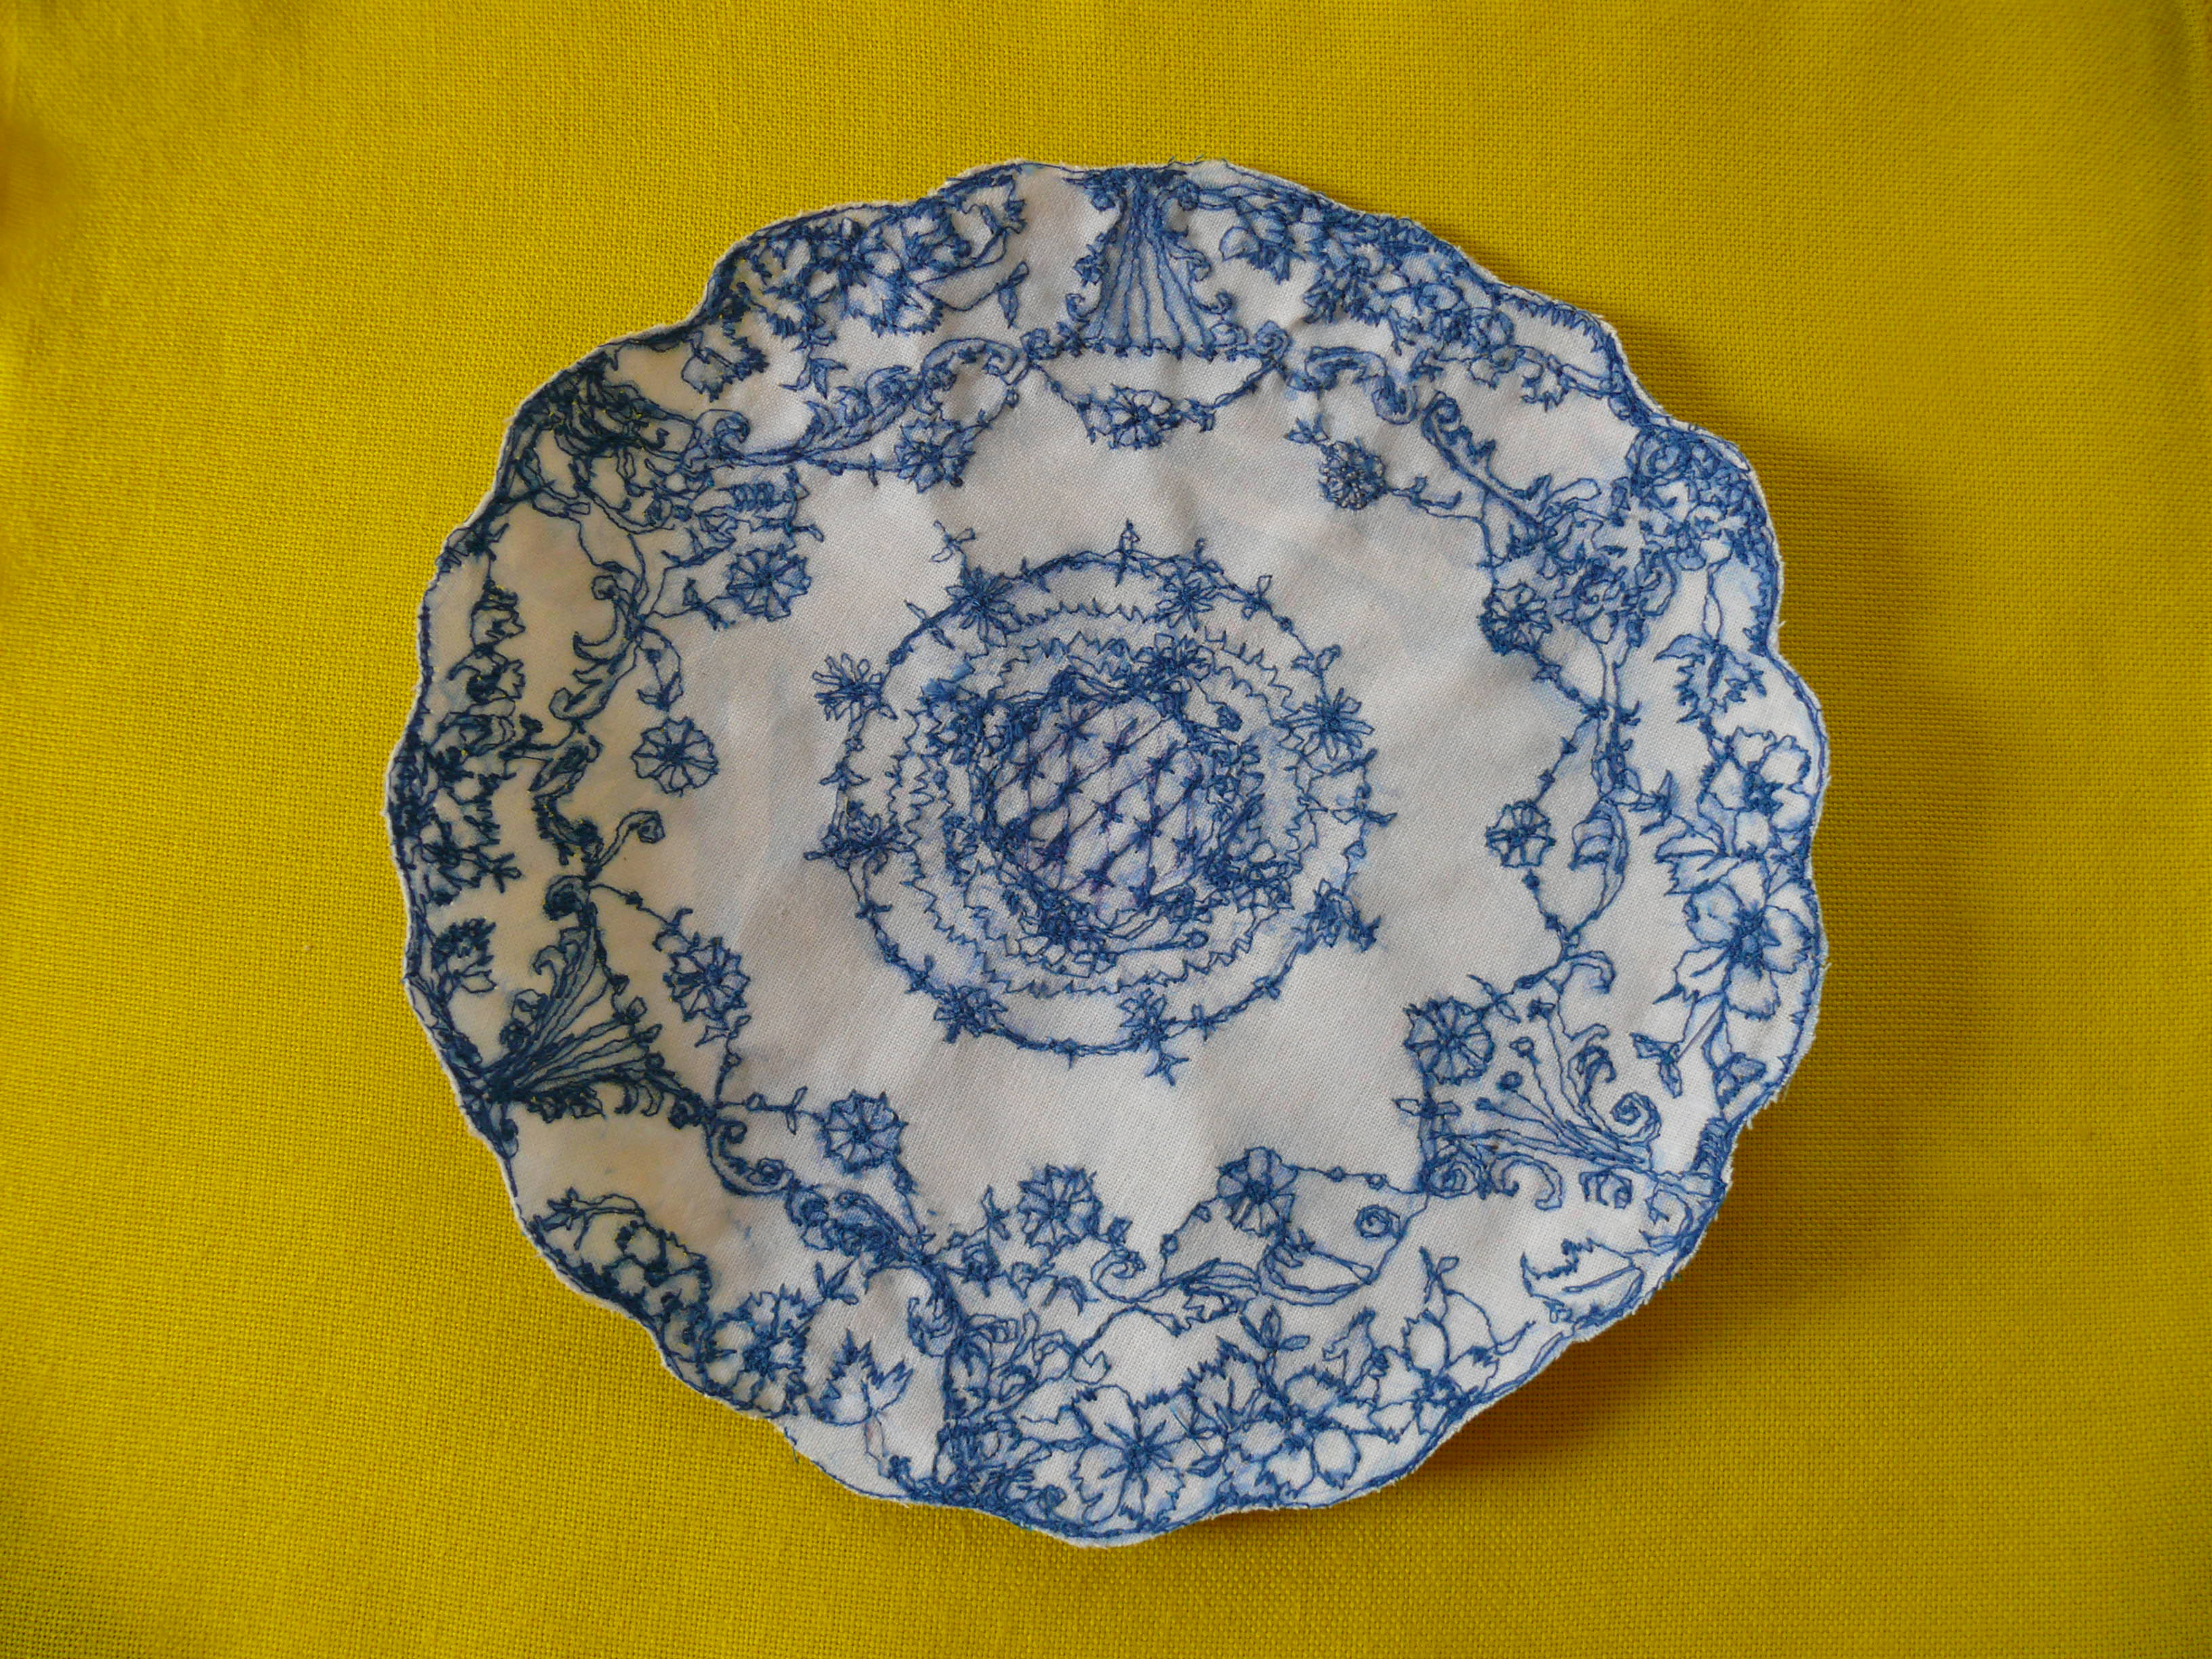 Embroidered plate